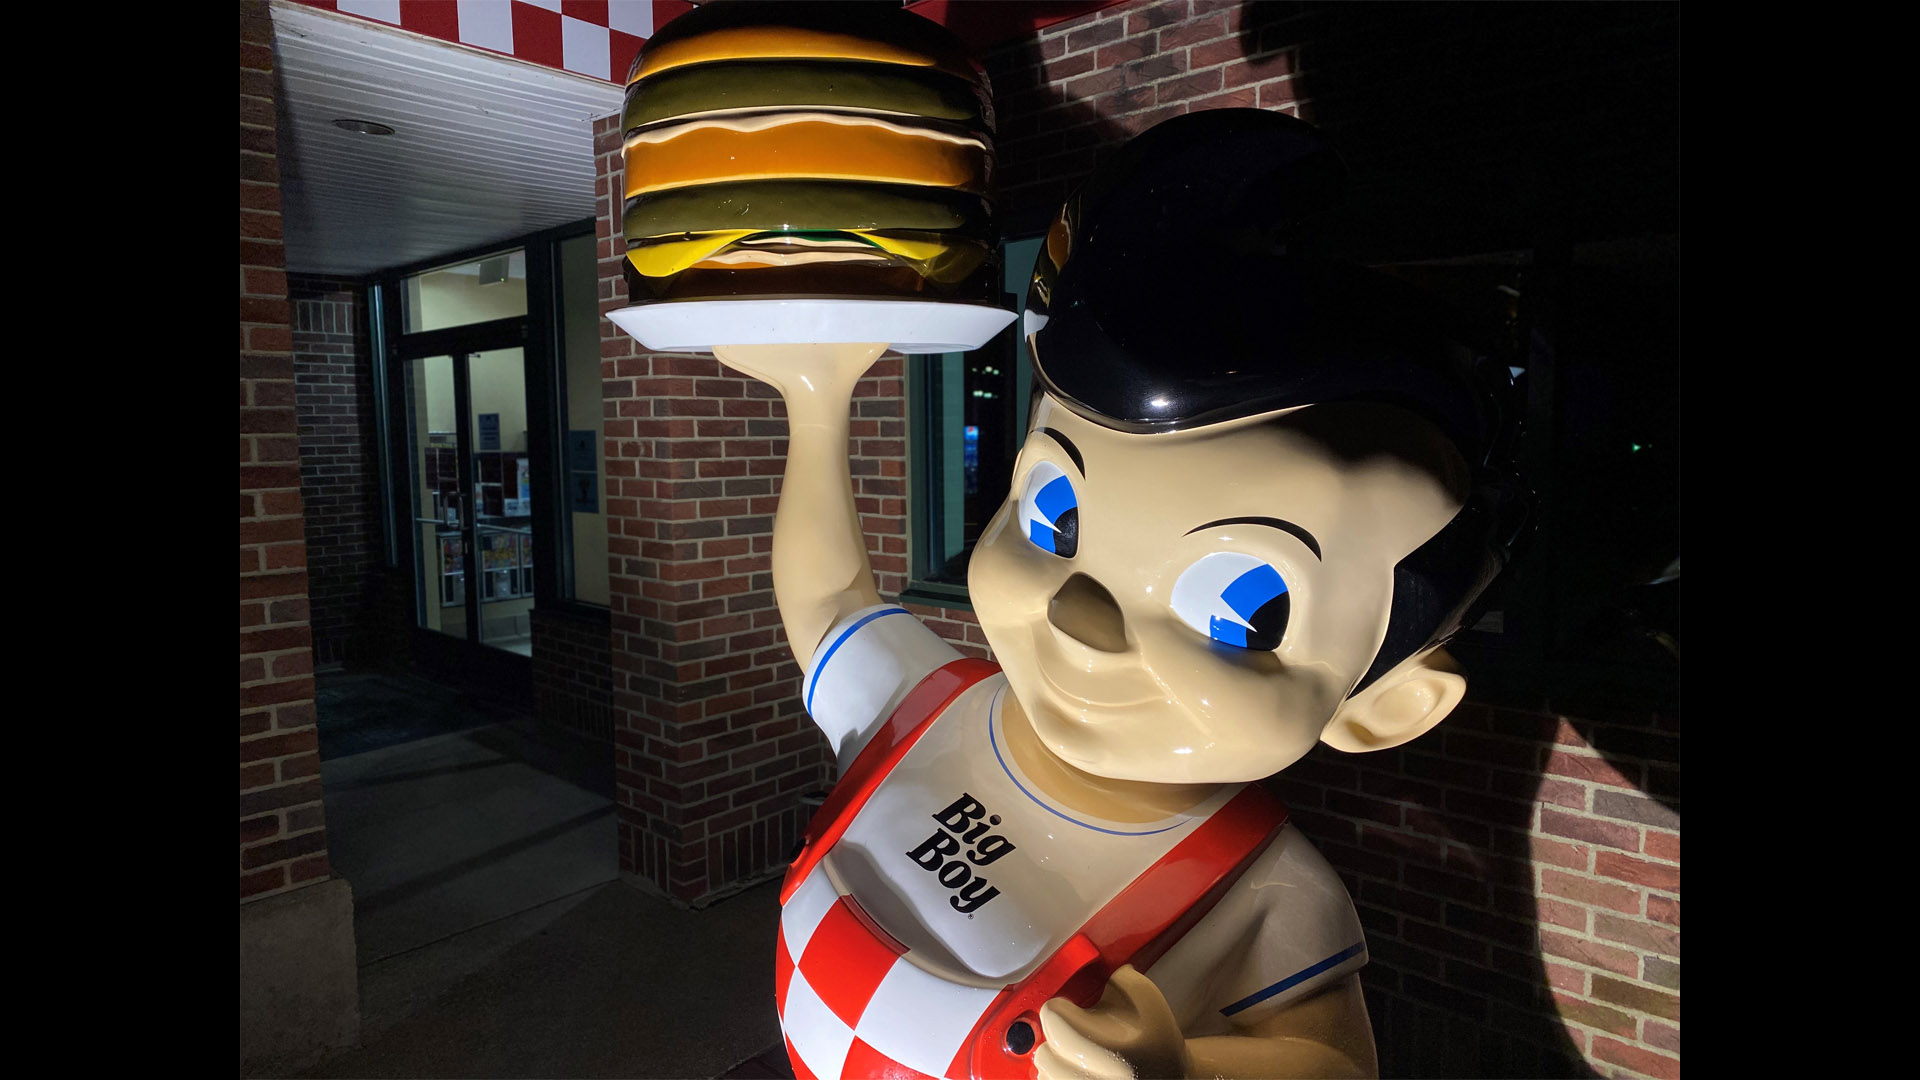 Big Boy Restaurant Chain Changes Mascot